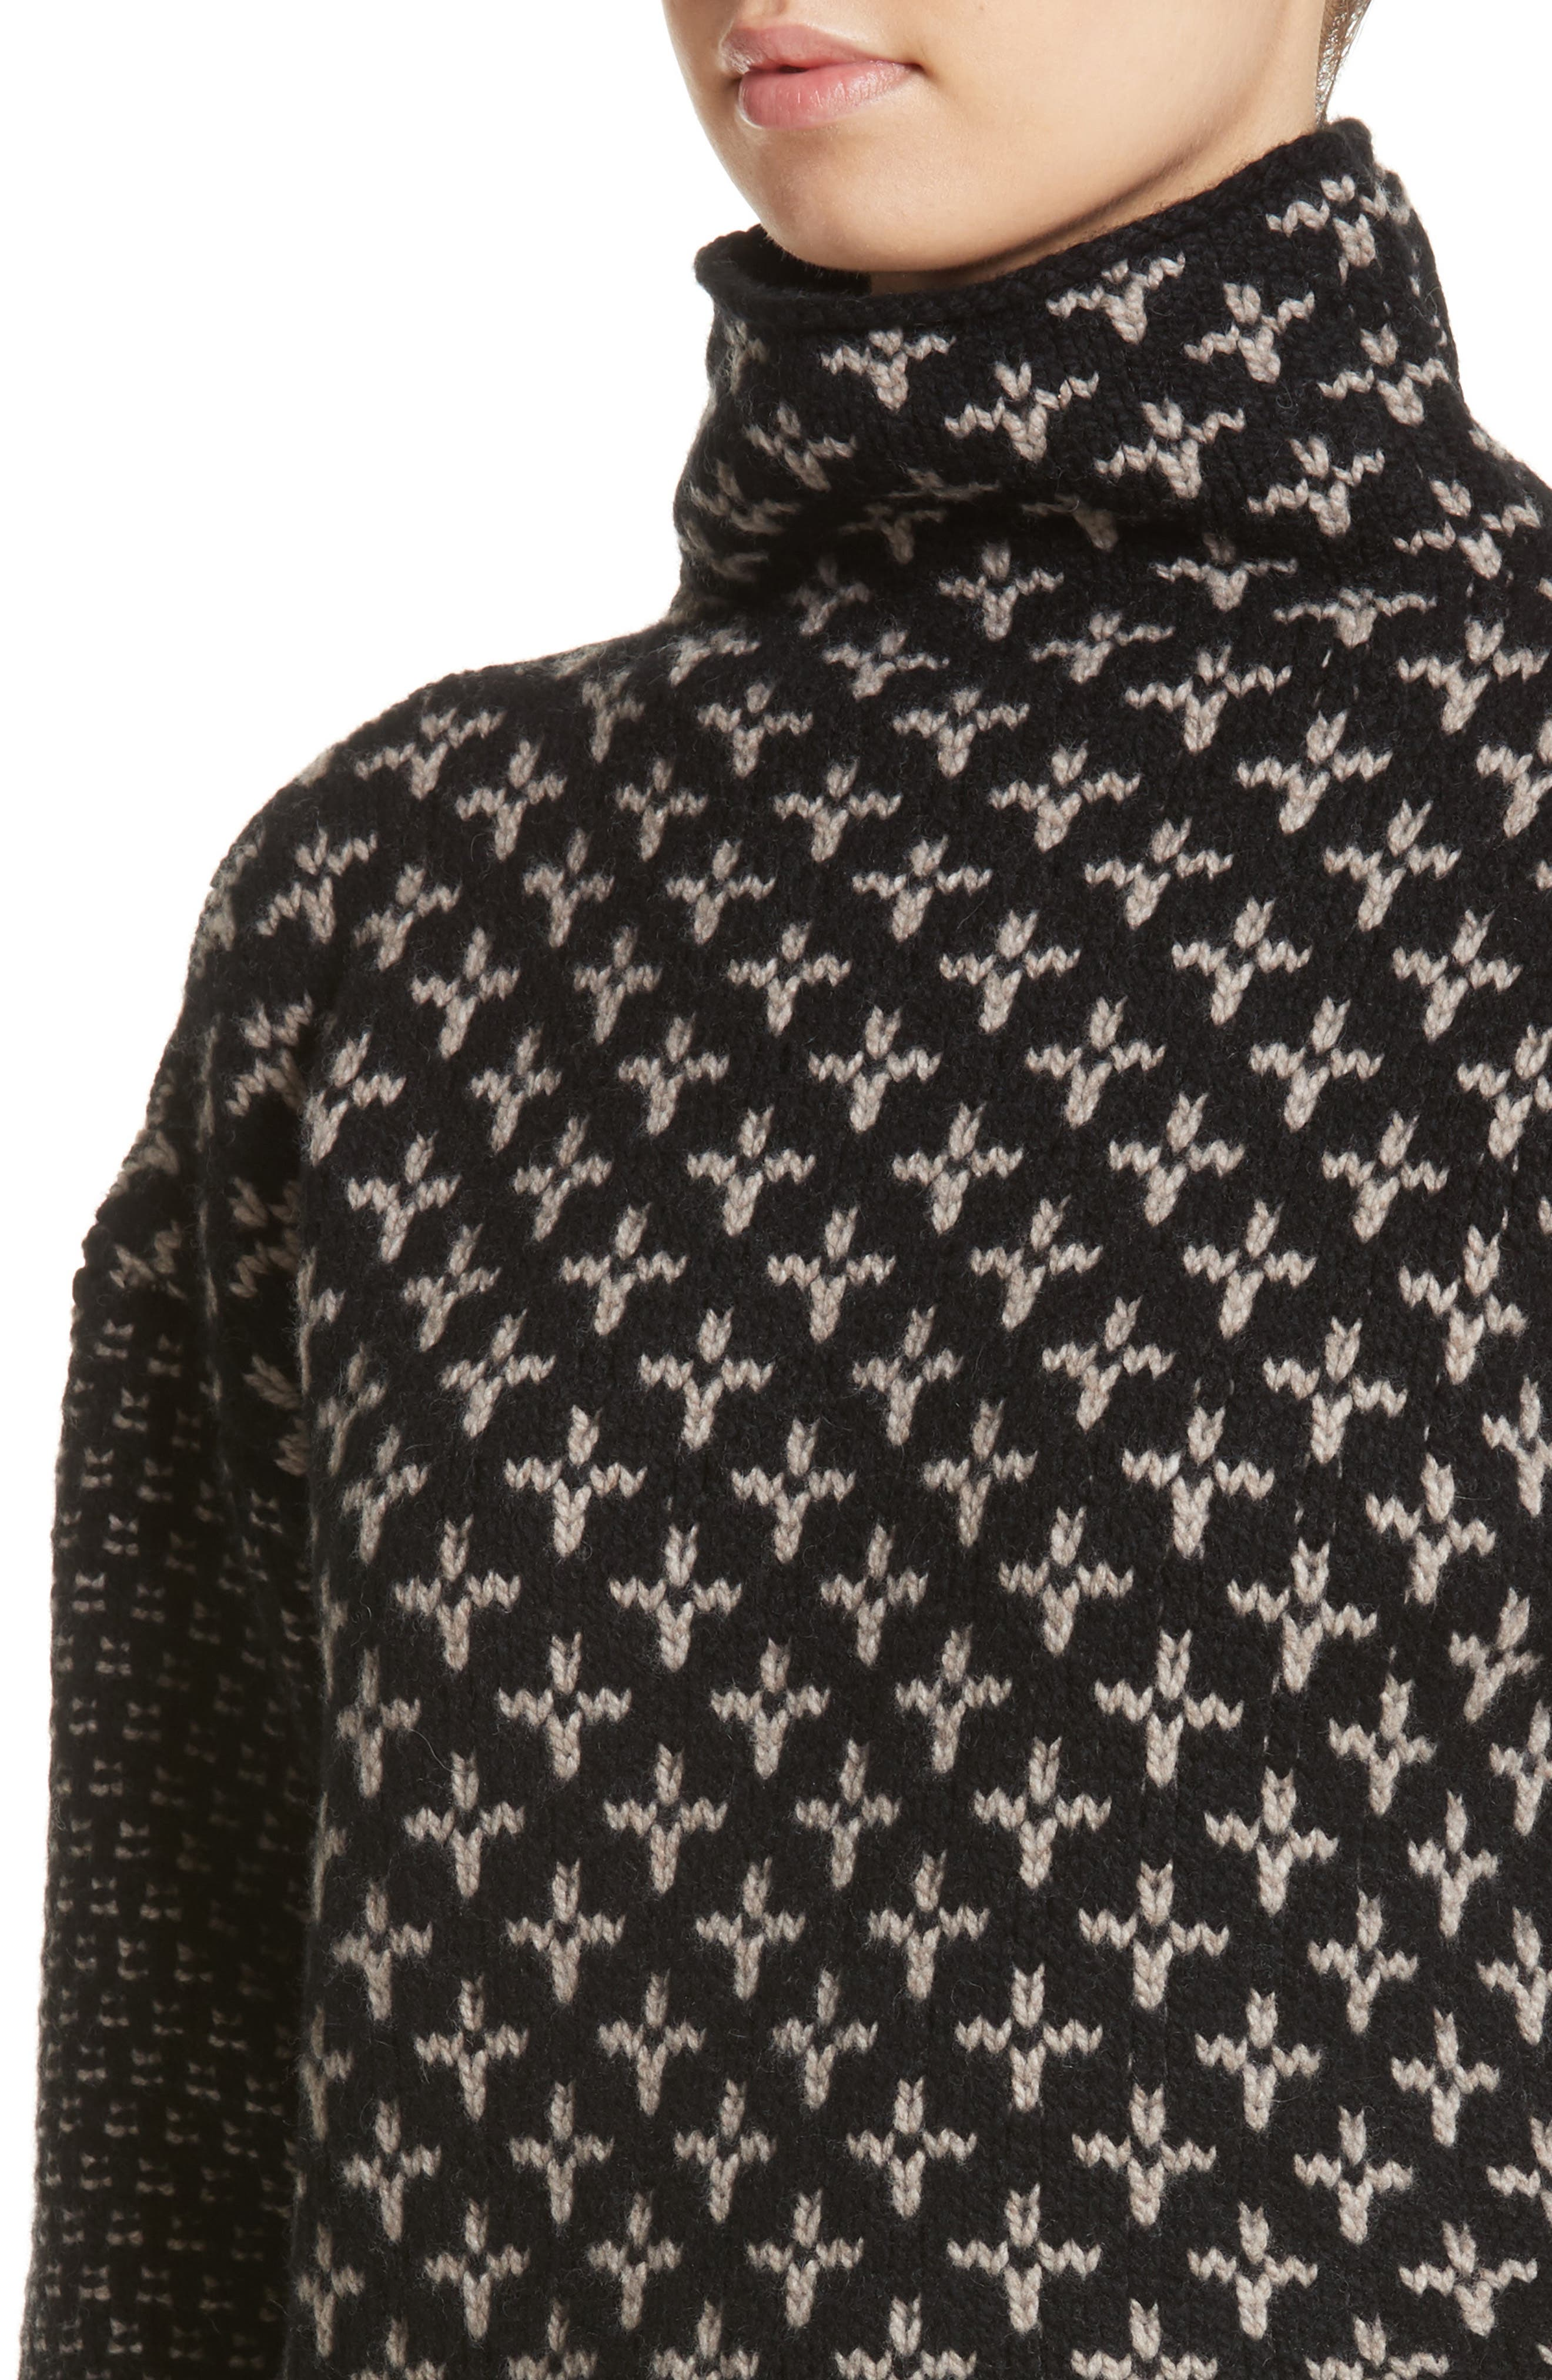 Rana Wool & Cashmere Sweater,                             Alternate thumbnail 4, color,                             Black